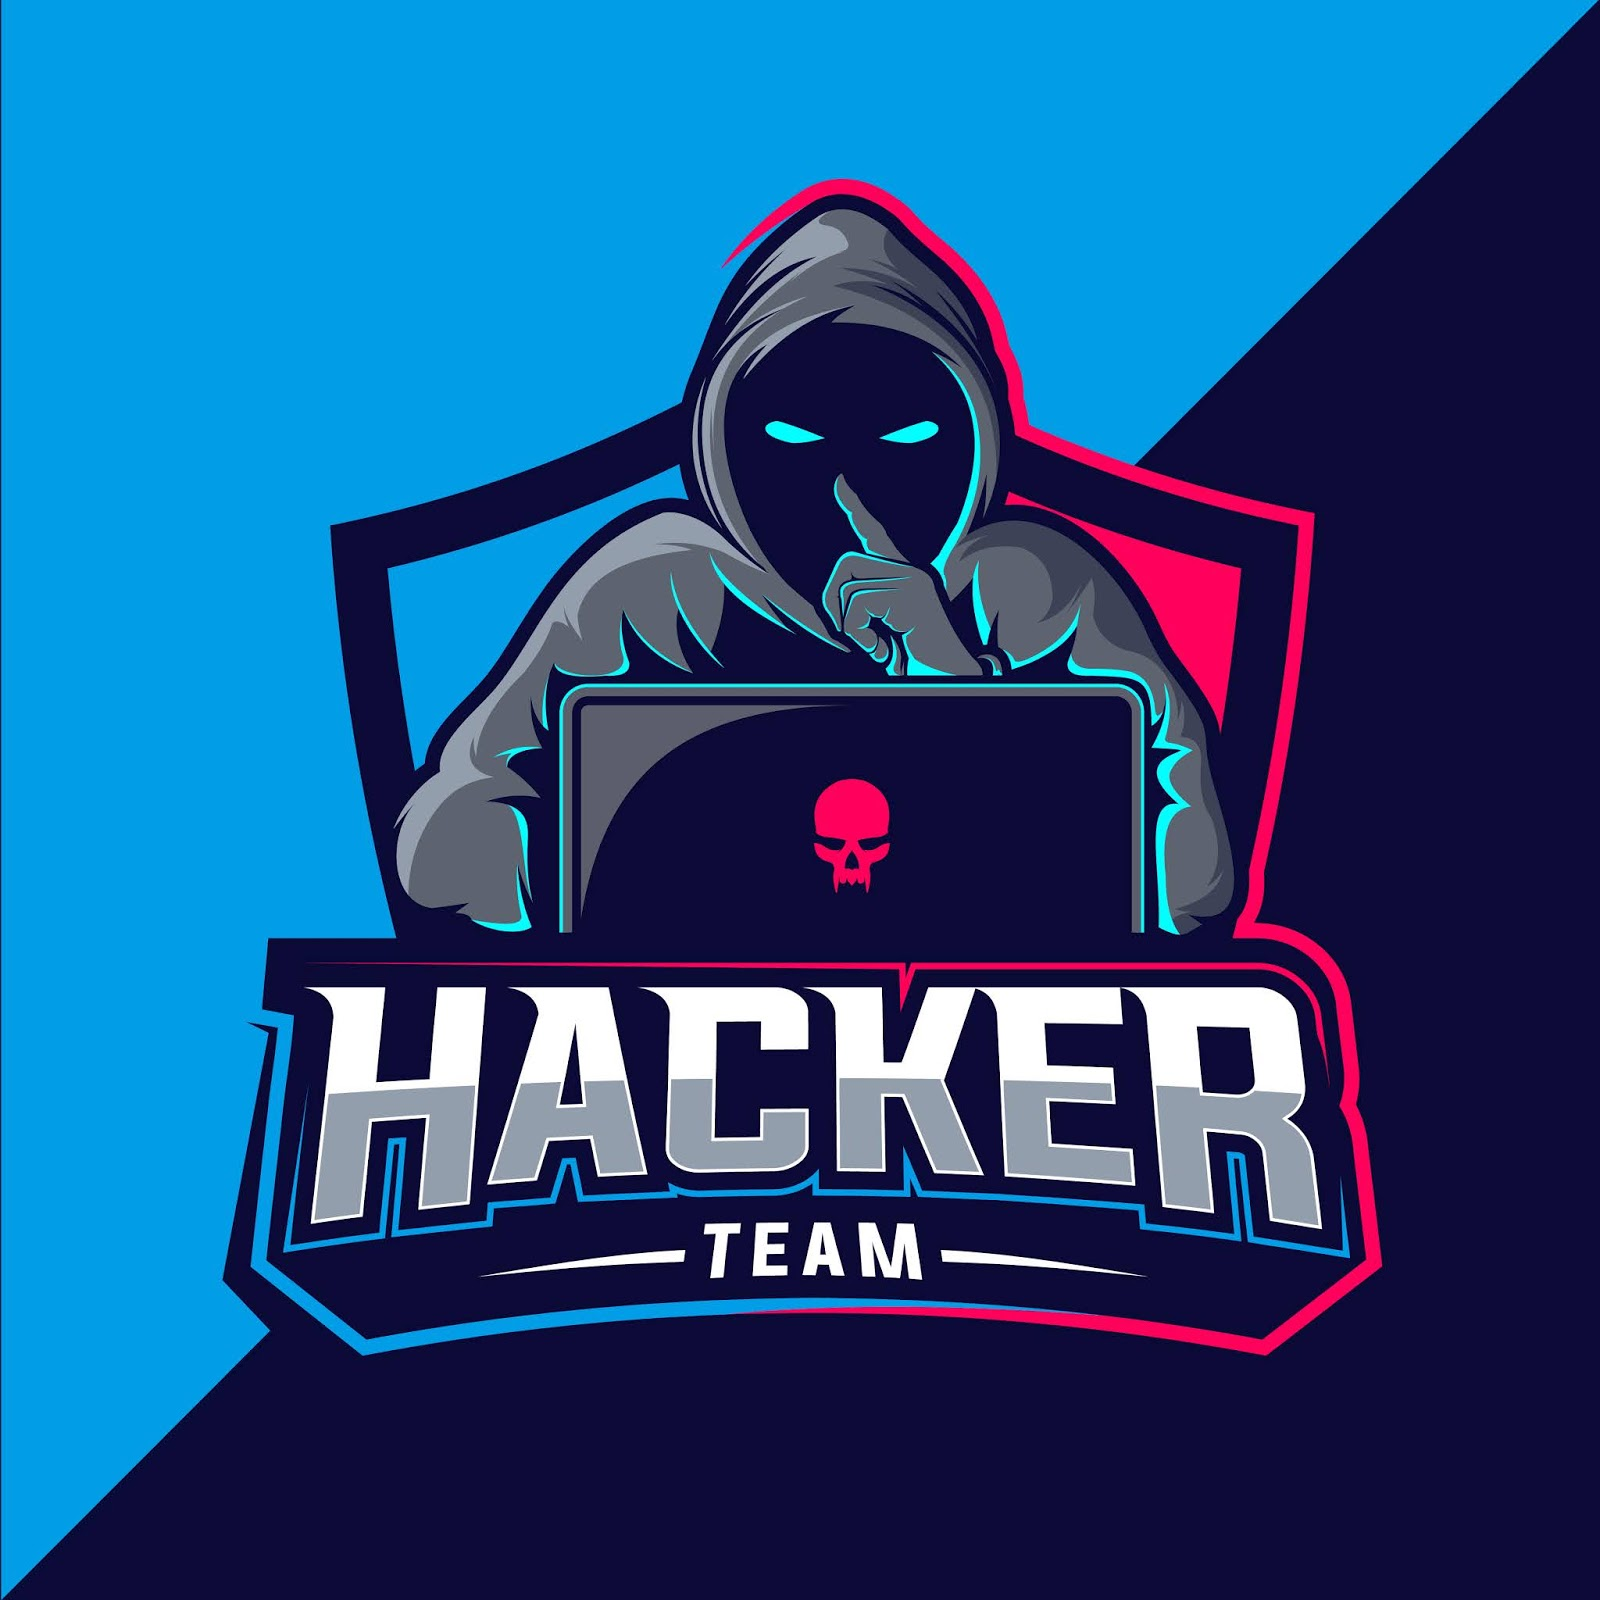 Hacker Team Esport Logo Free Download Vector CDR, AI, EPS and PNG Formats